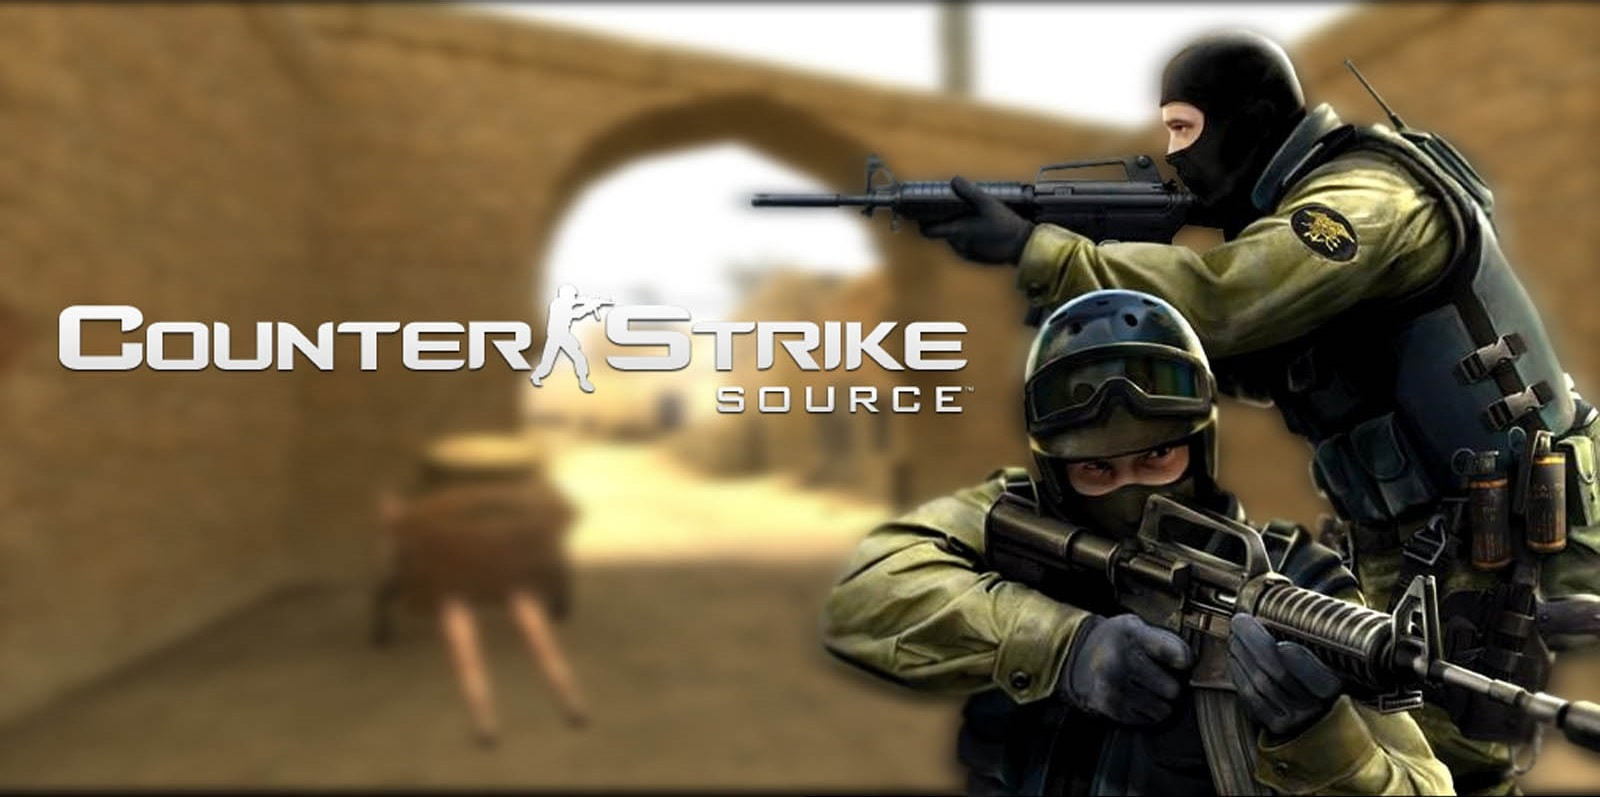 Counter strike source hd desktop wallpapers 7wallpapers counter strike source desktop wallpapers voltagebd